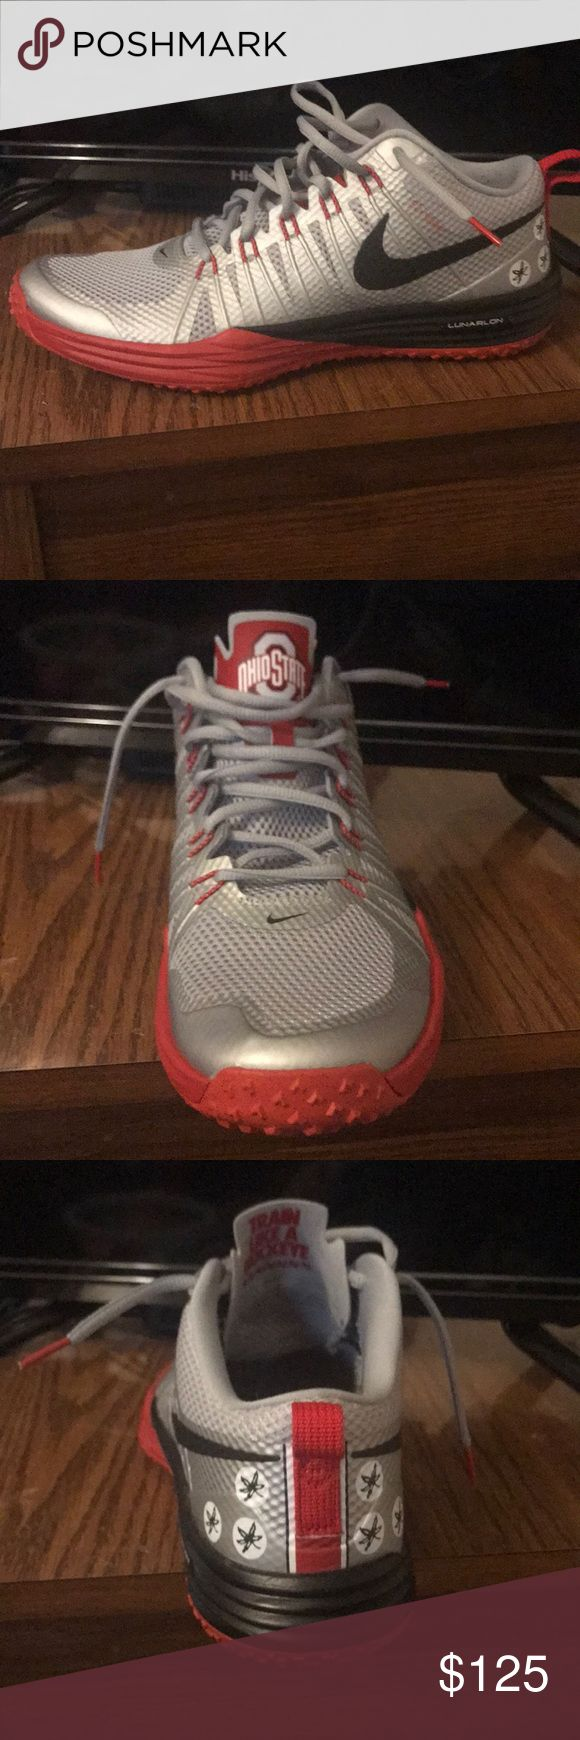 Shoes These have been worn a couple times. They are in great condition. fly wire lunarlon nike special edition shoes. 2014 Ohio state national championship shoes. They are a men's size 10.5. Nike Shoes Sneakers